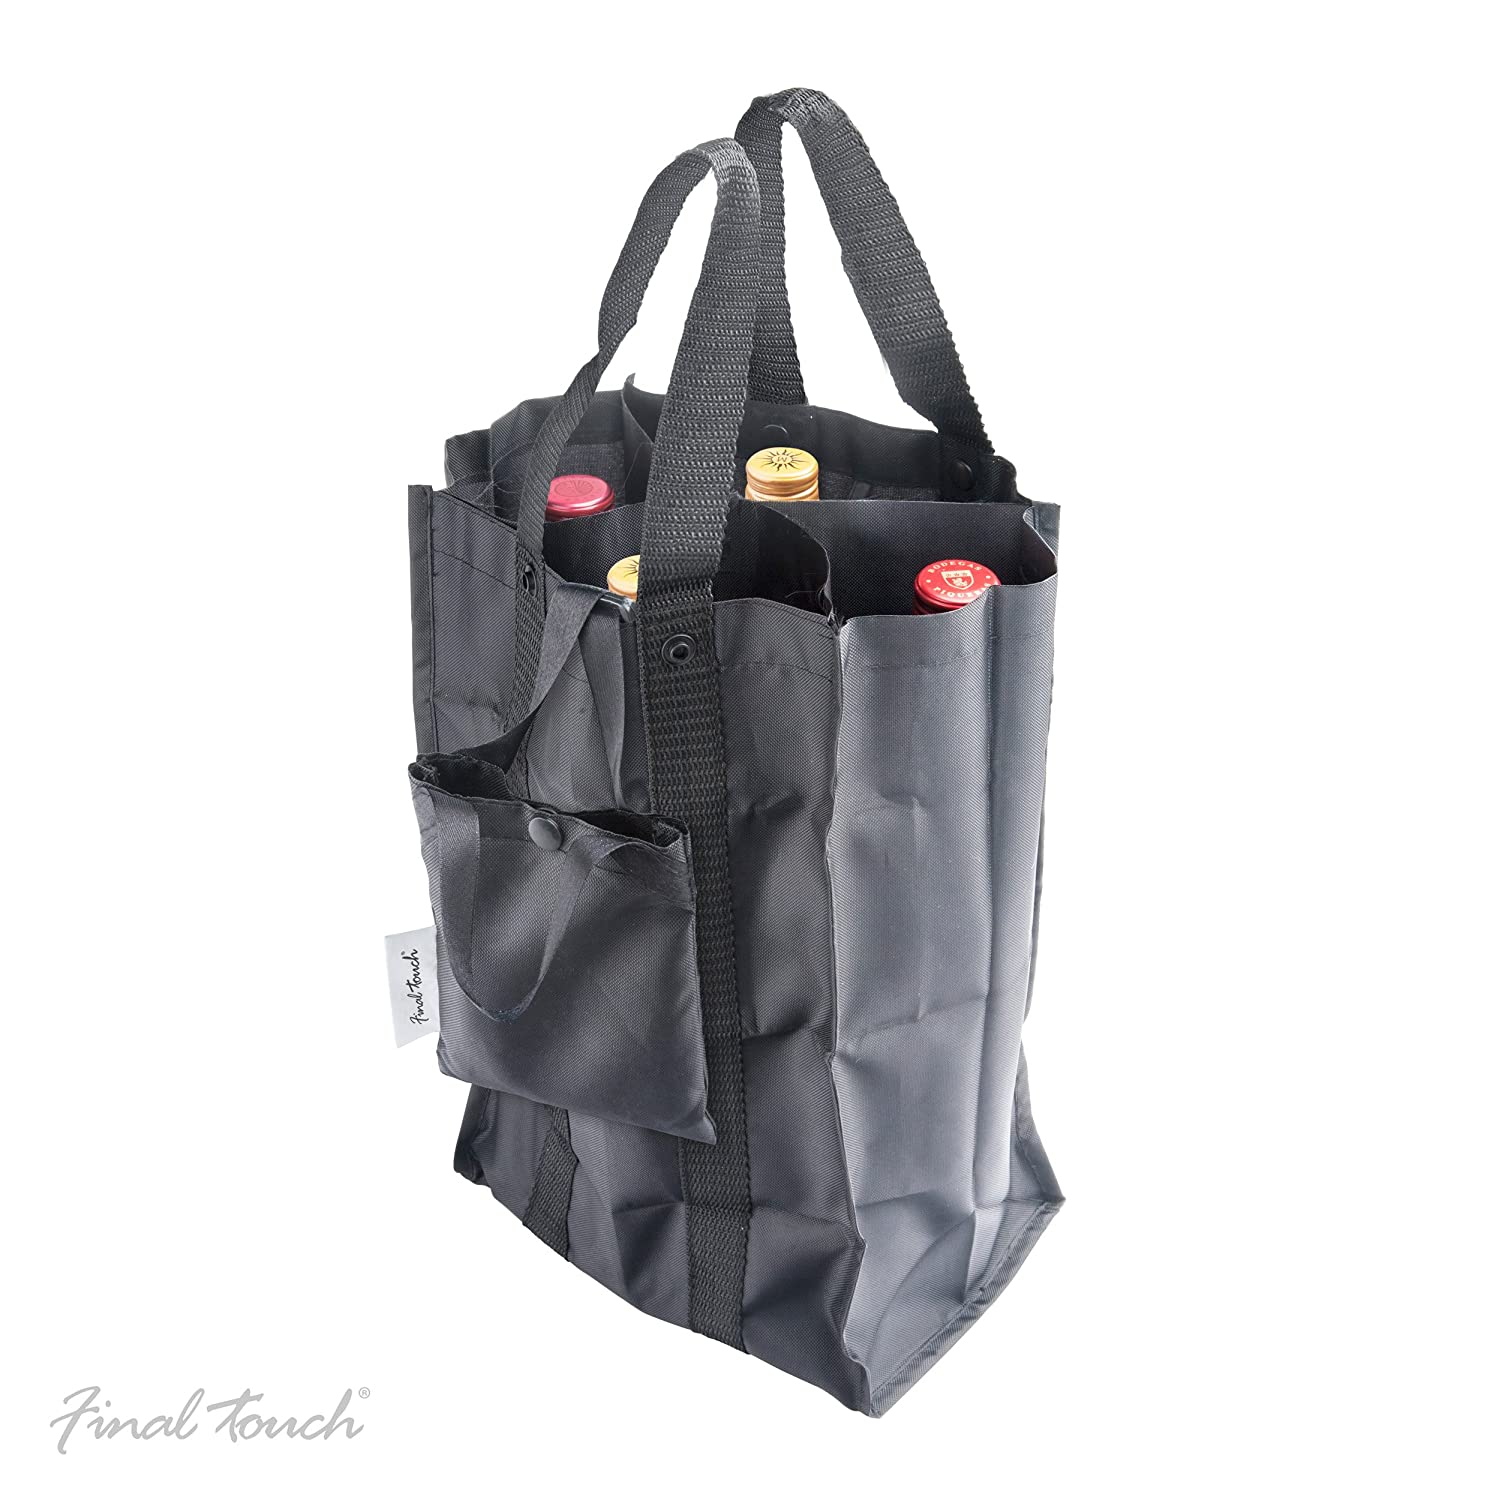 Final Touch Folding 4-Bottle Wine Bag Product Specialties Inc.